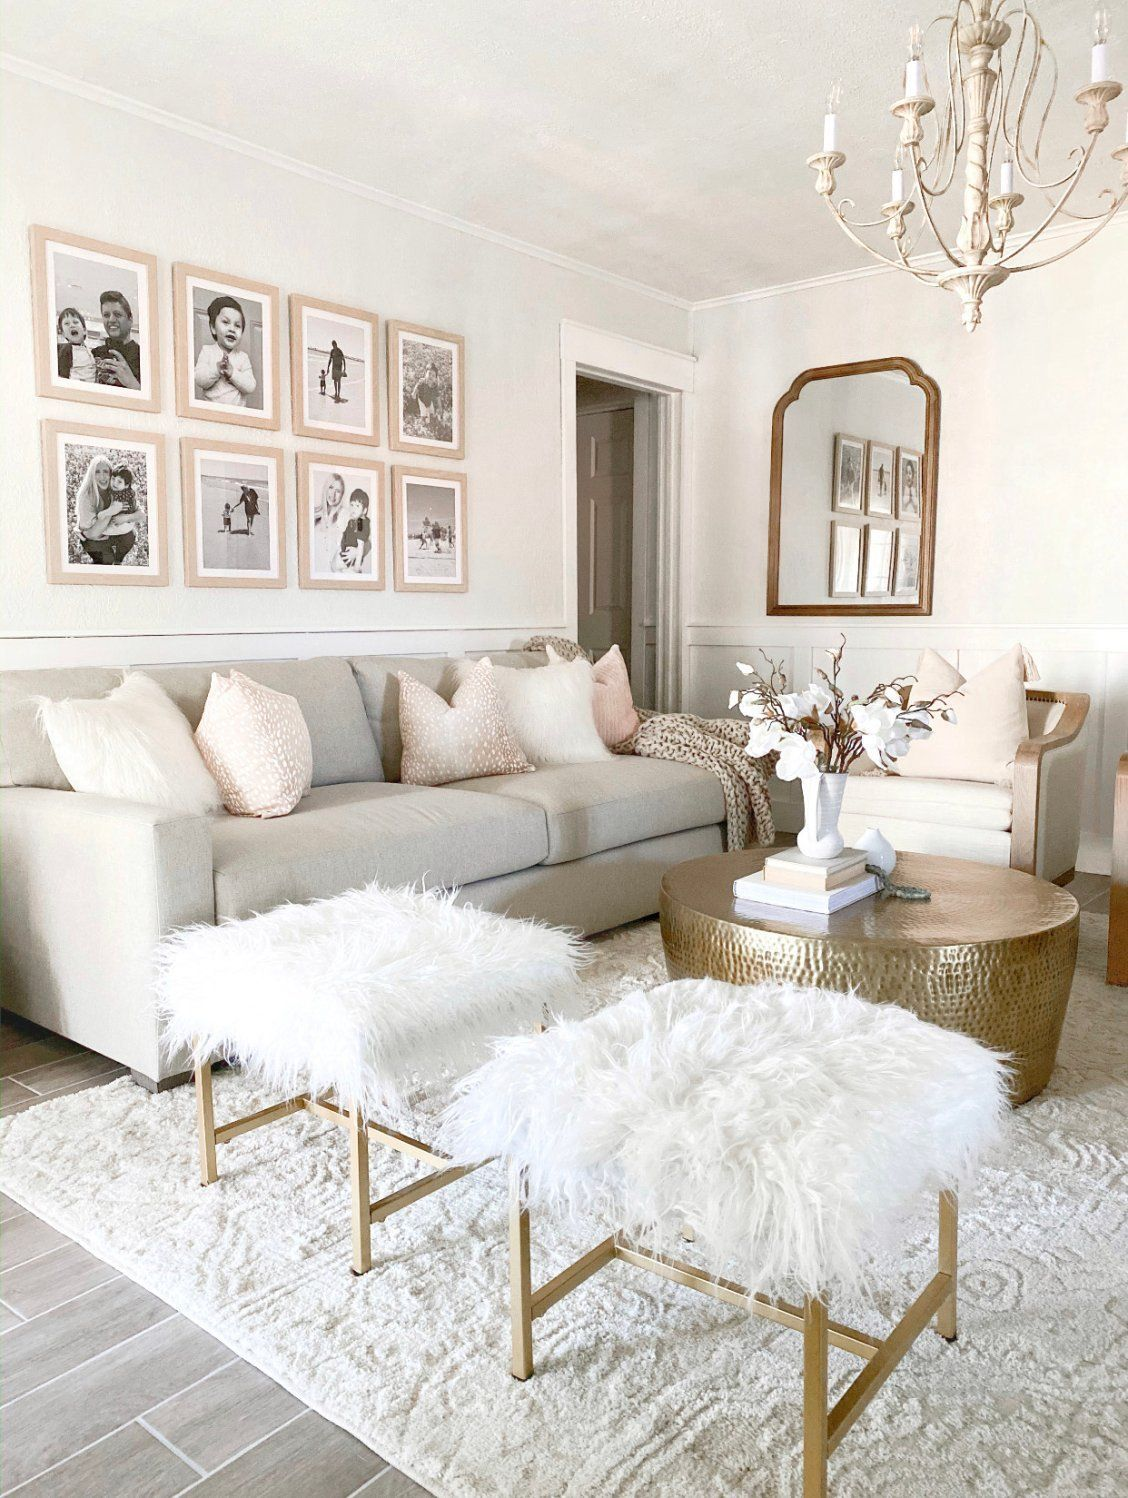 20 Living Room Decor Design Ideas And The 10 Best Room Decor Inspiration And How To Decorate You Home Living Room Modern Farmhouse Living Room Glam Living Room Living rooms ideas and inspiration